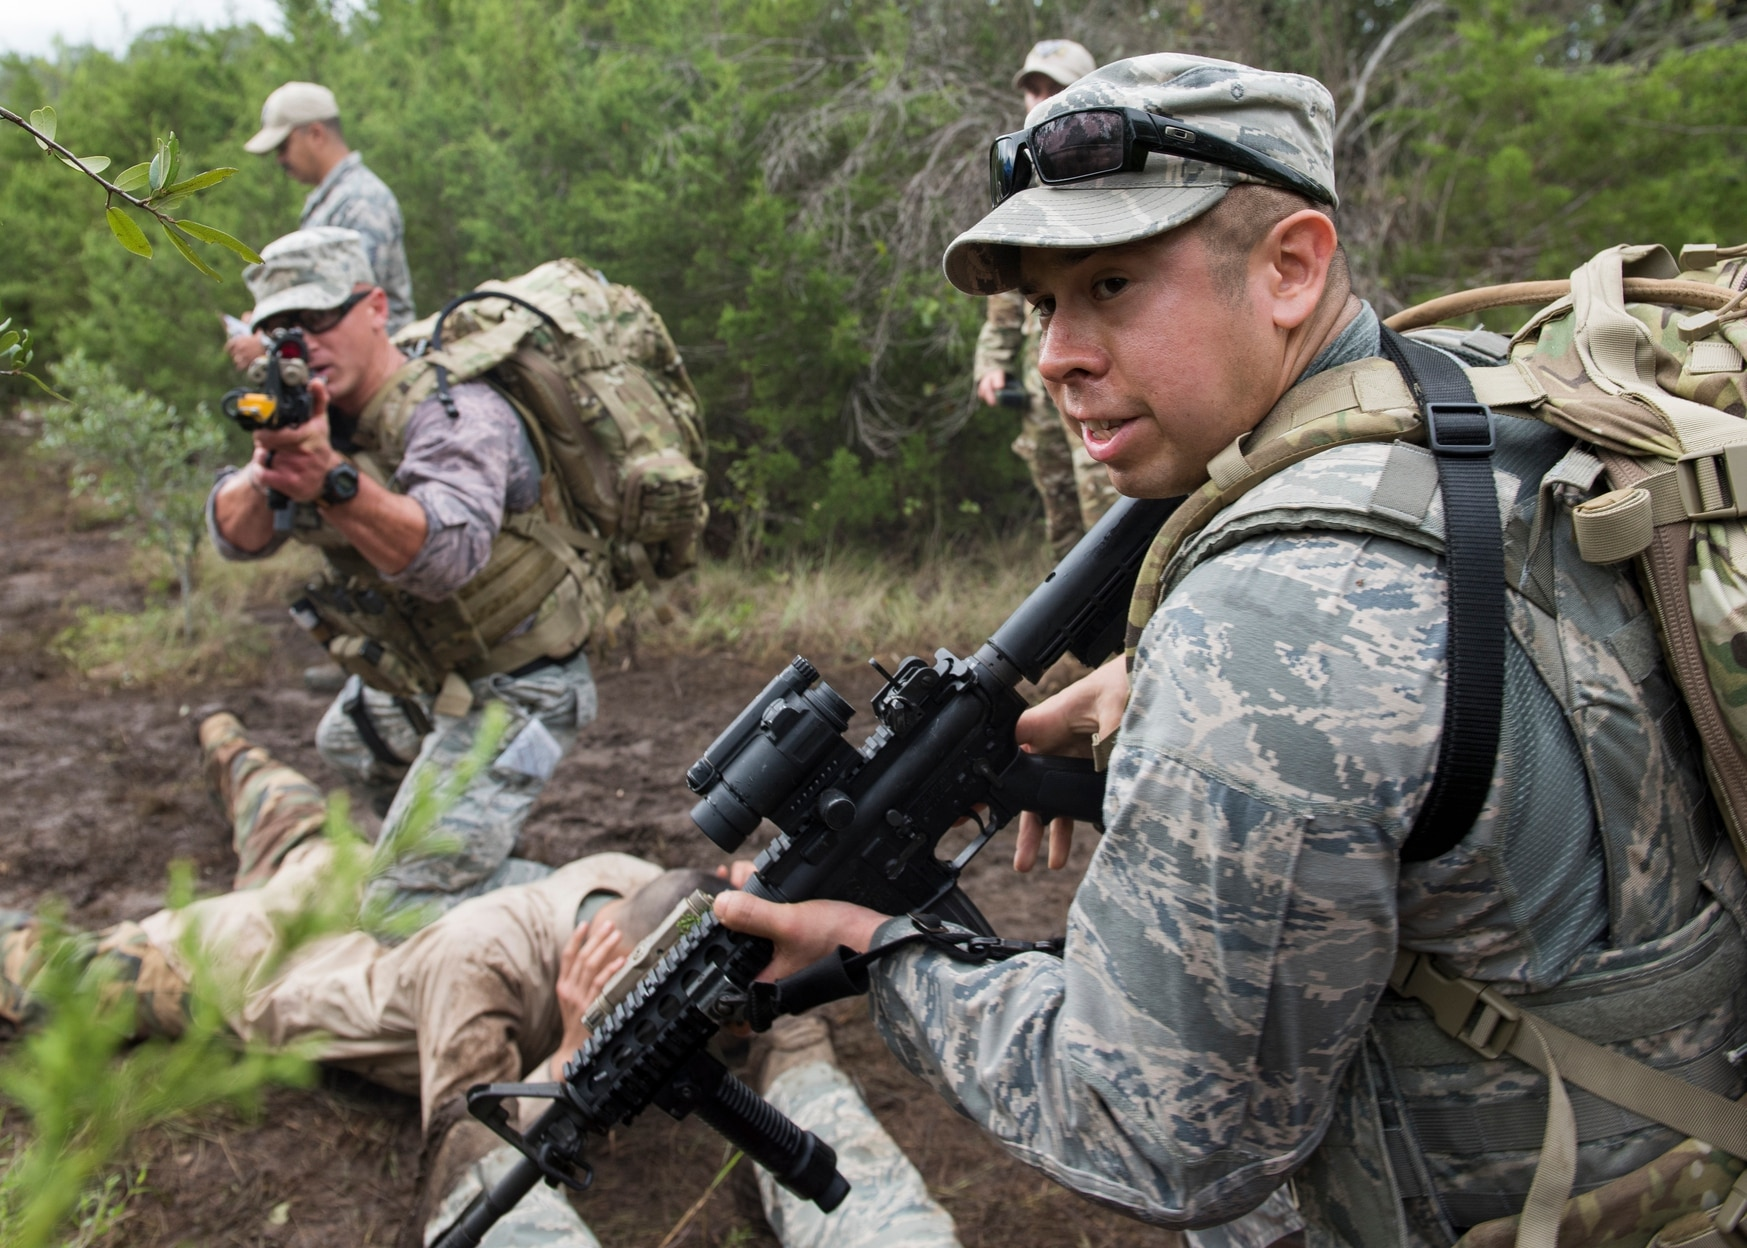 Tech. Sgt. Felipe Fernandez, a security forces craftsman assigned to the 147th Attack Wing, Texas Air National Guard, secures a potential threat during the dismounted operations portion of a Defender's Challenge competition at Camp Bullis in San Antonio Sept. 12, 2018. (Master Sgt. Joshua Allmaras/Air Guard)